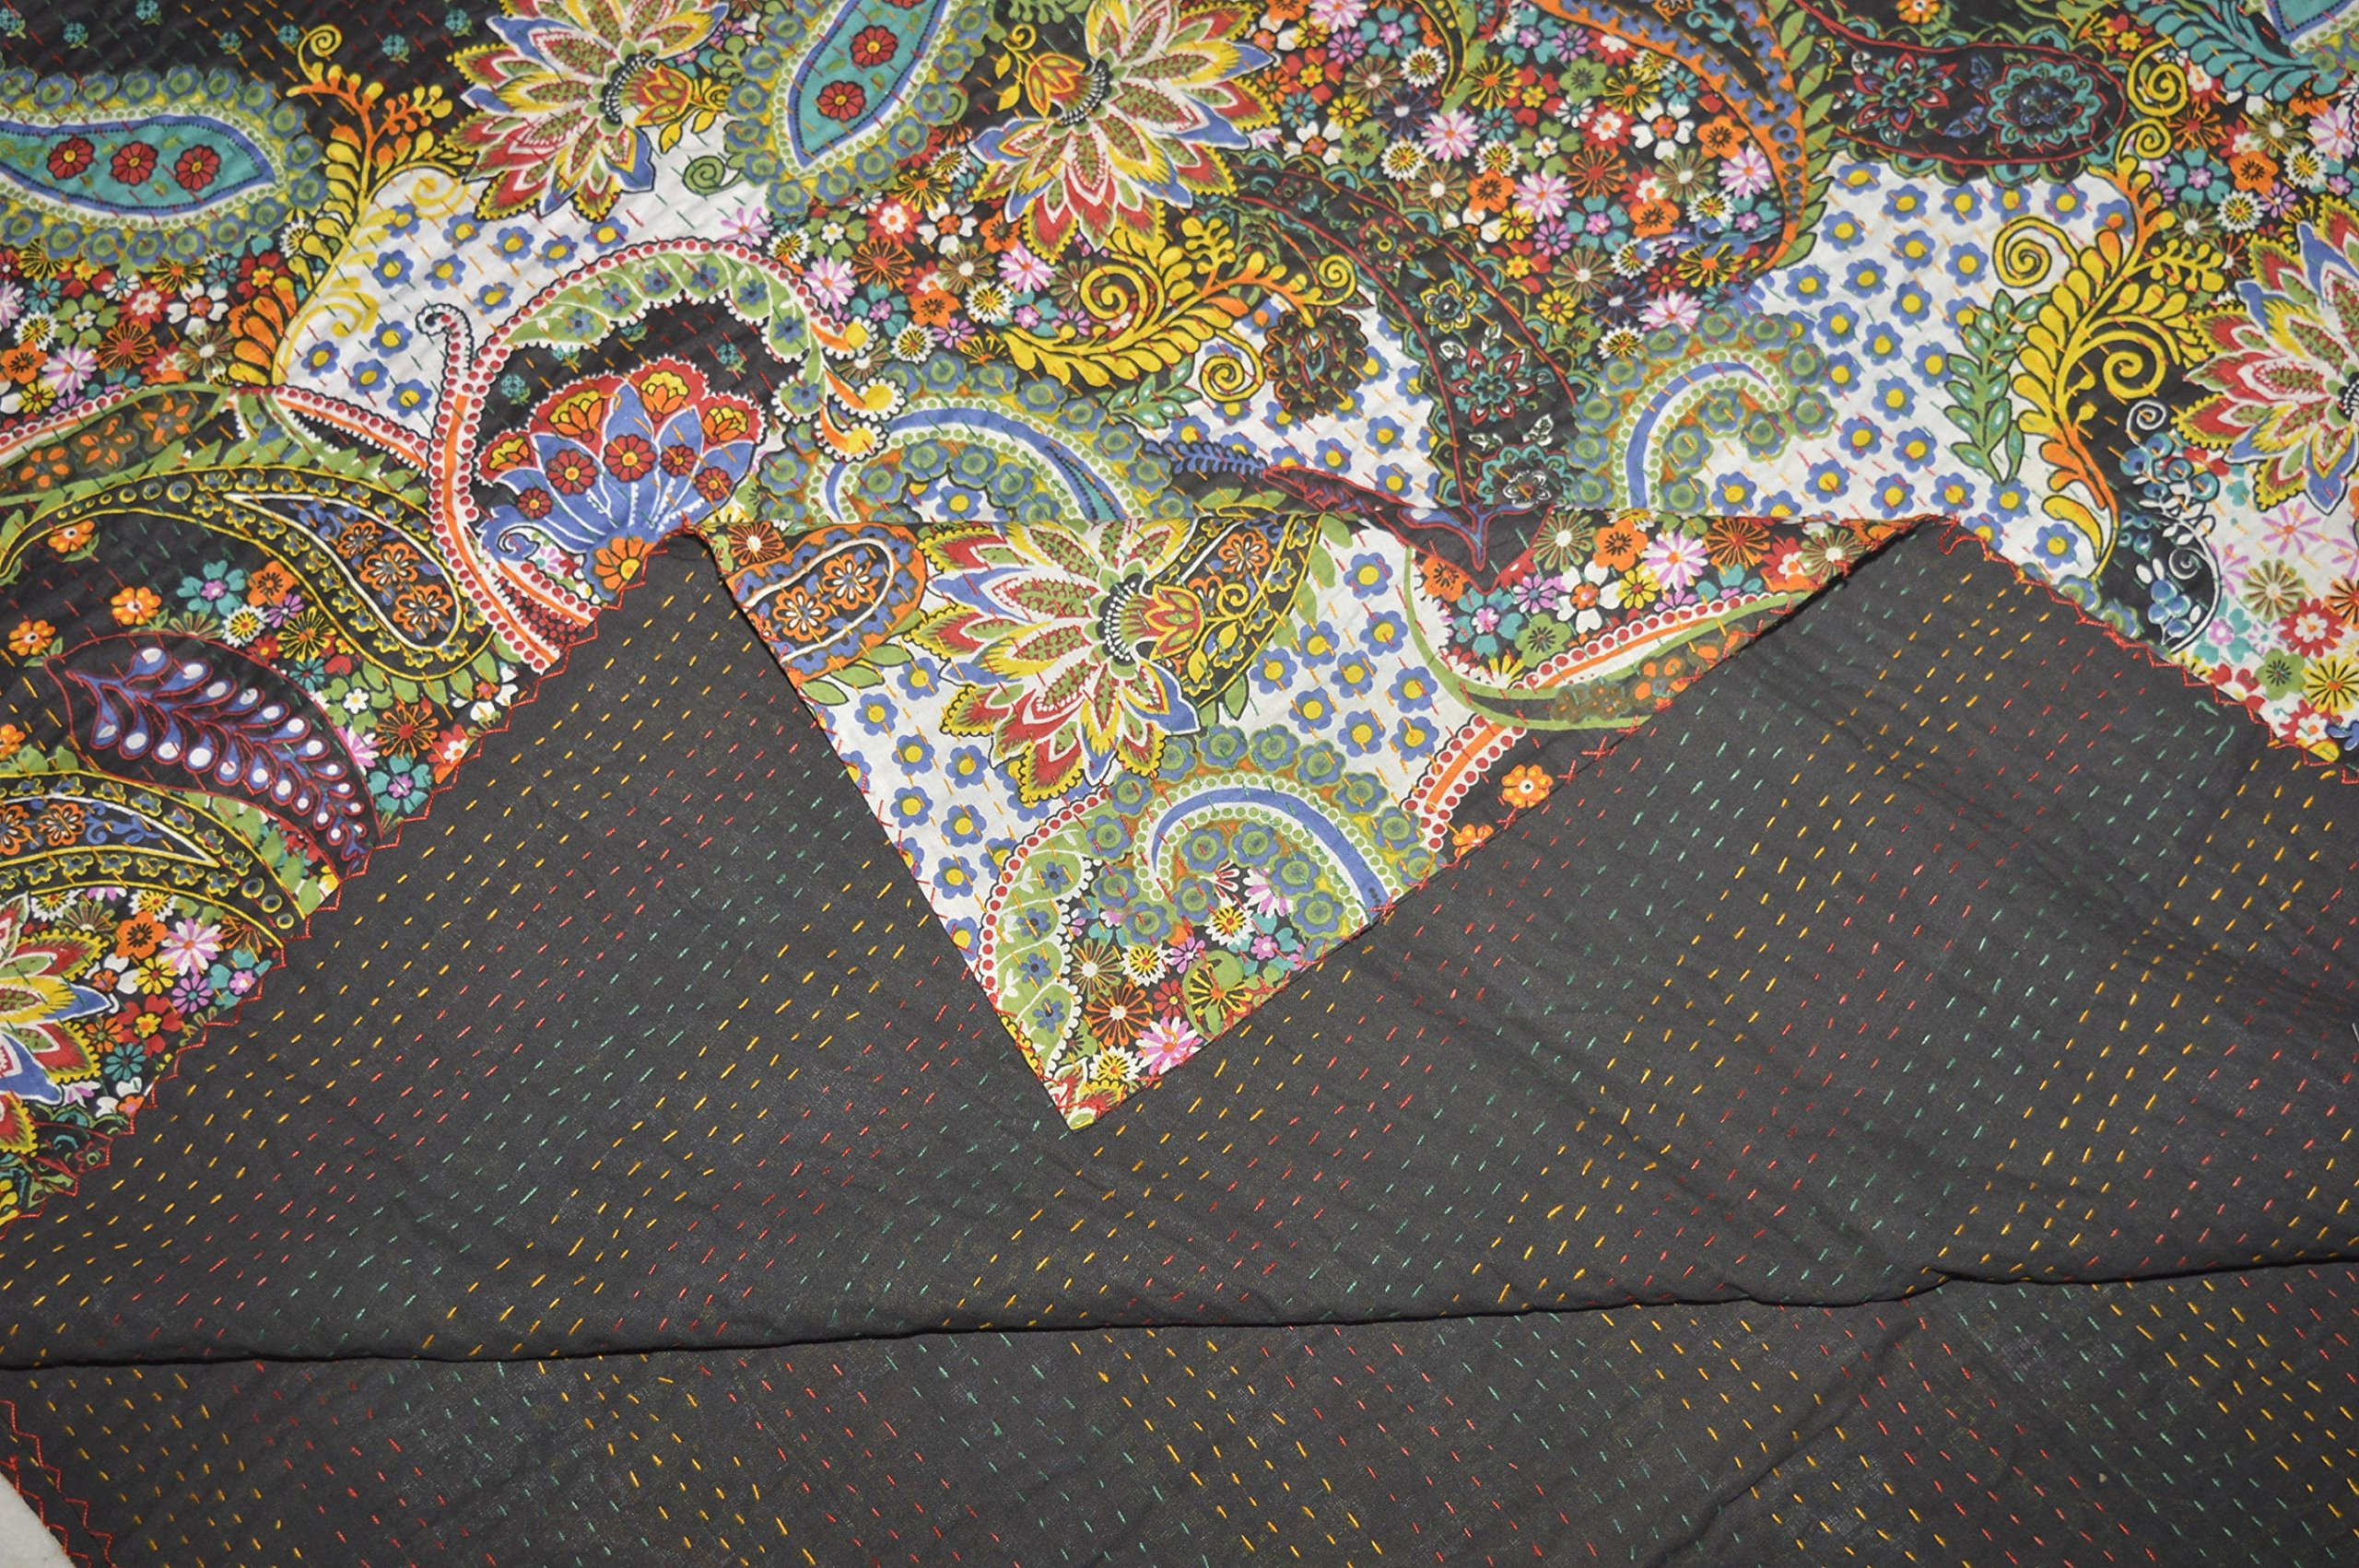 Tribal Asian Textiles Queen Kantha Quilt In Black paisley, Kantha Blanket Bedding Bedspread Throw by Tribal Asian Textiles (Image #3)